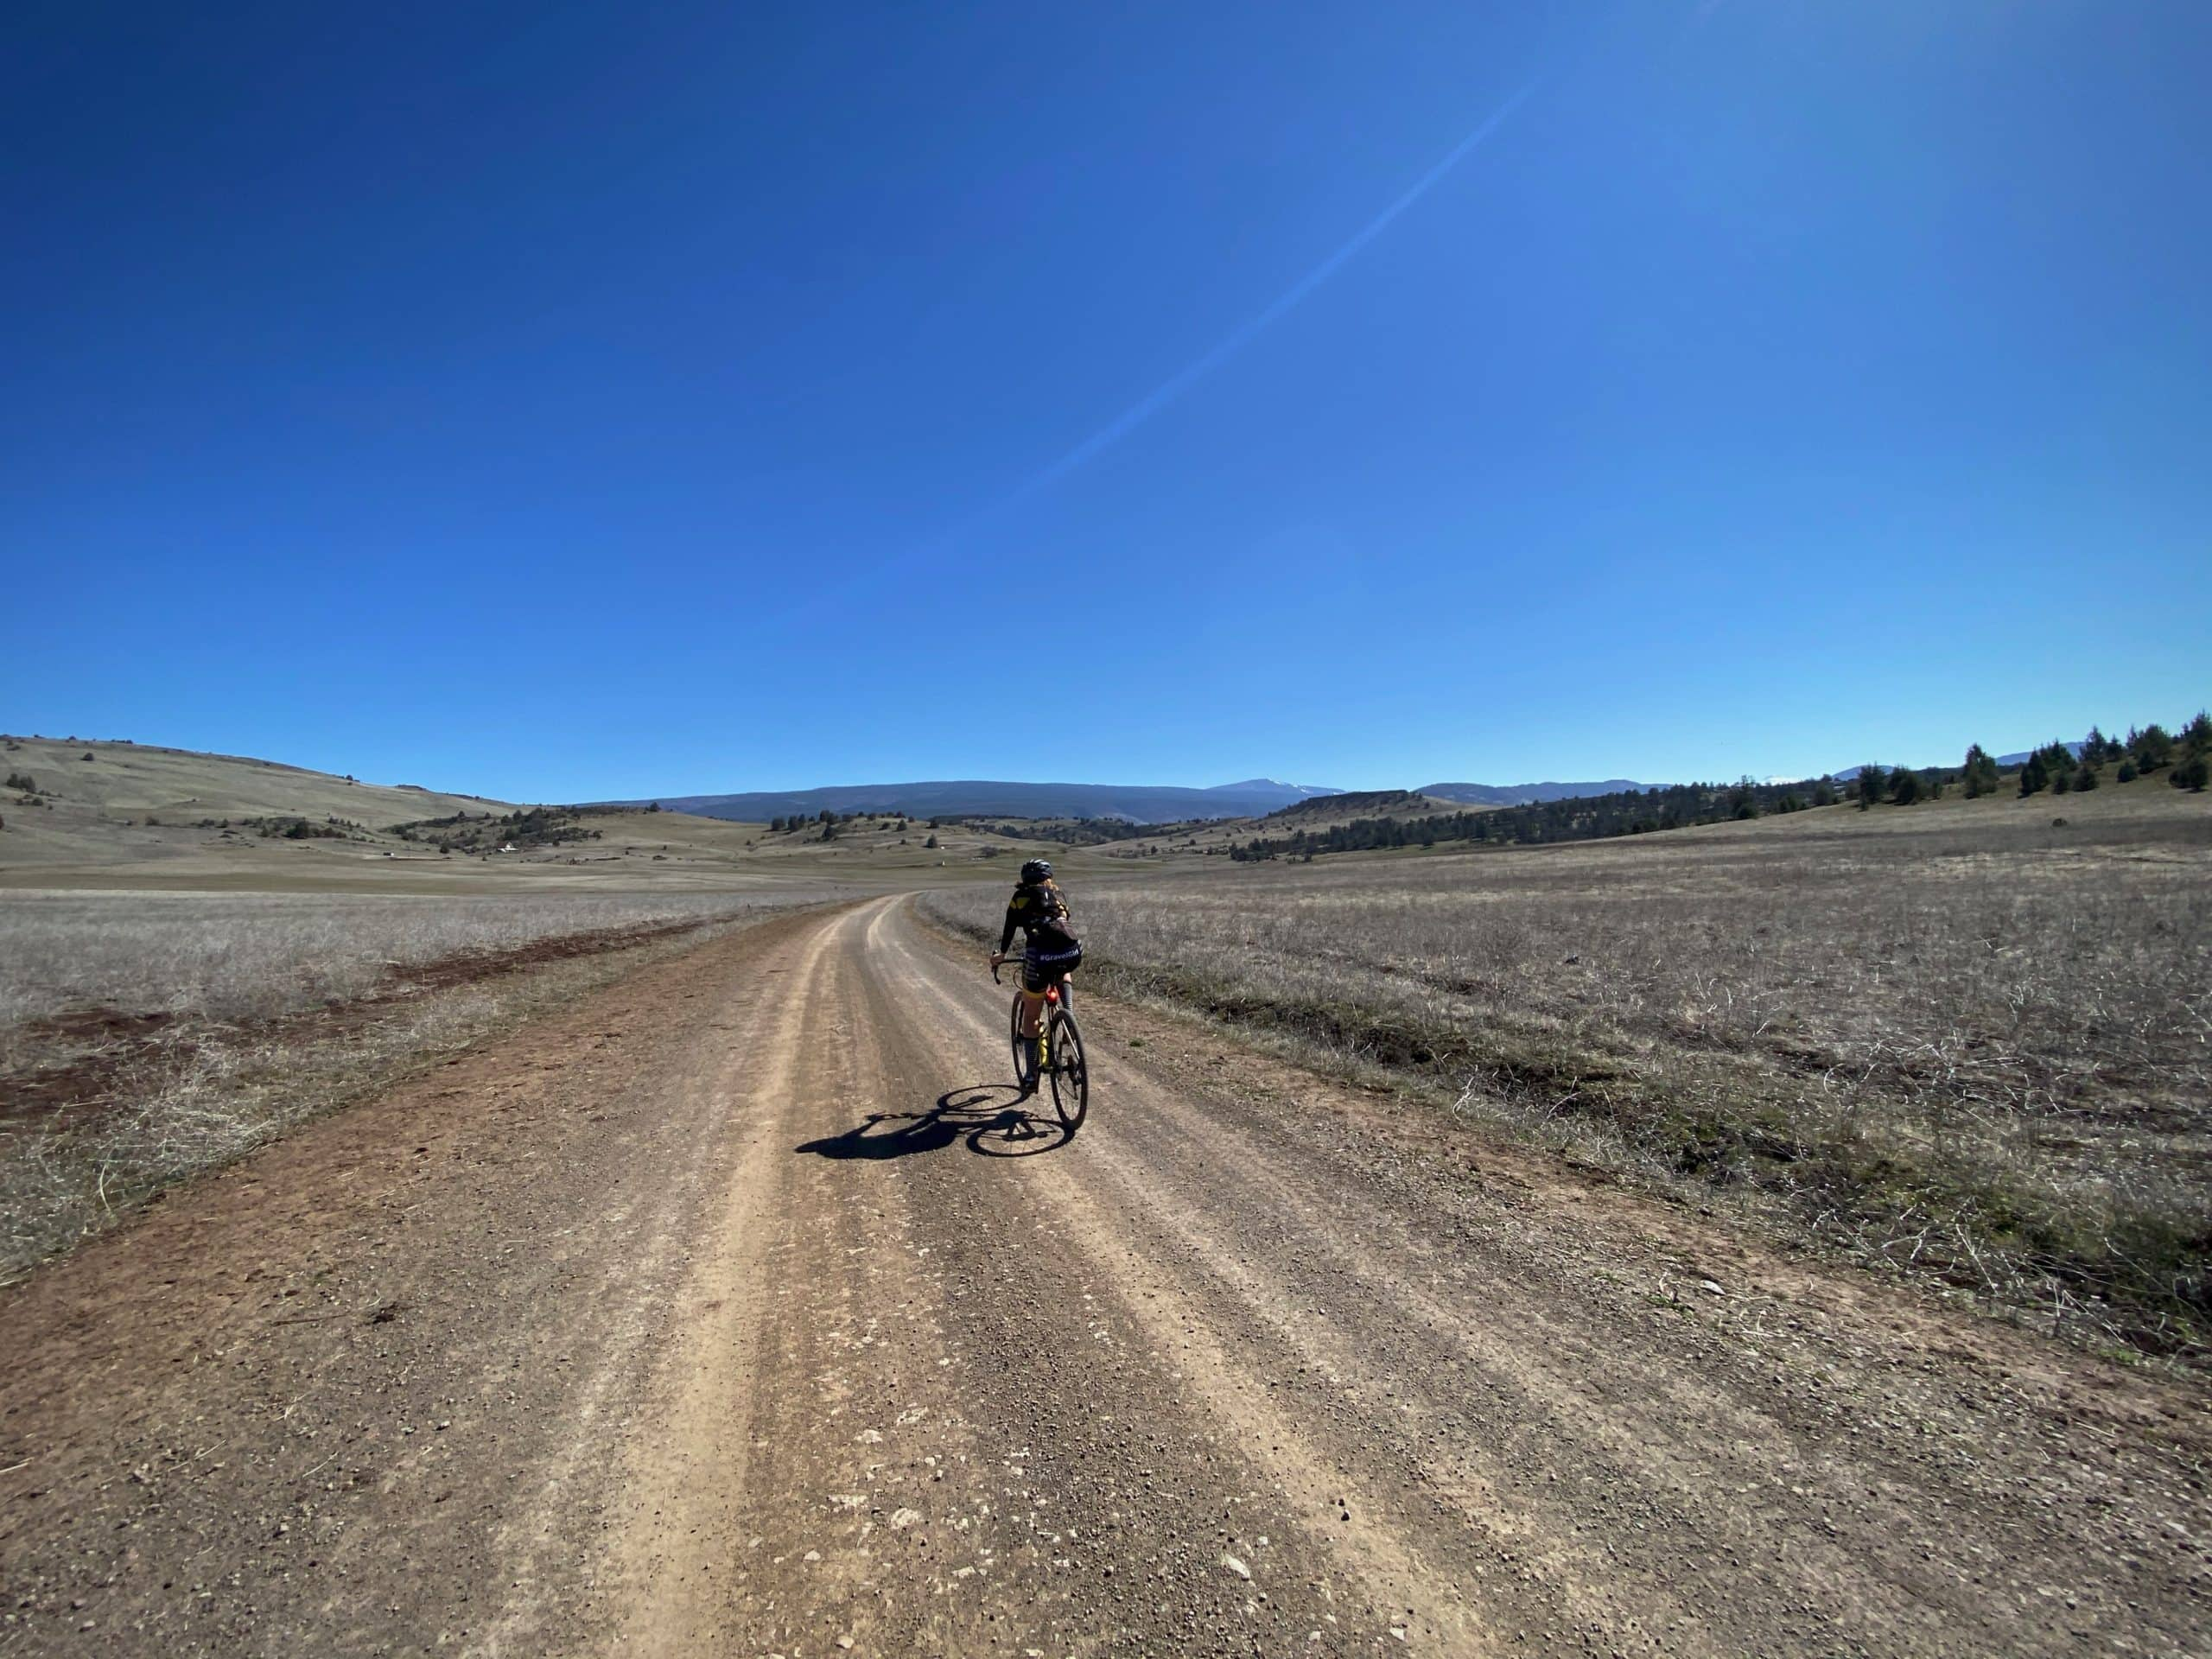 Cyclist on gravel roads with open view. Near Iron Gate reservoir and Copco lake. Yreka, CA.